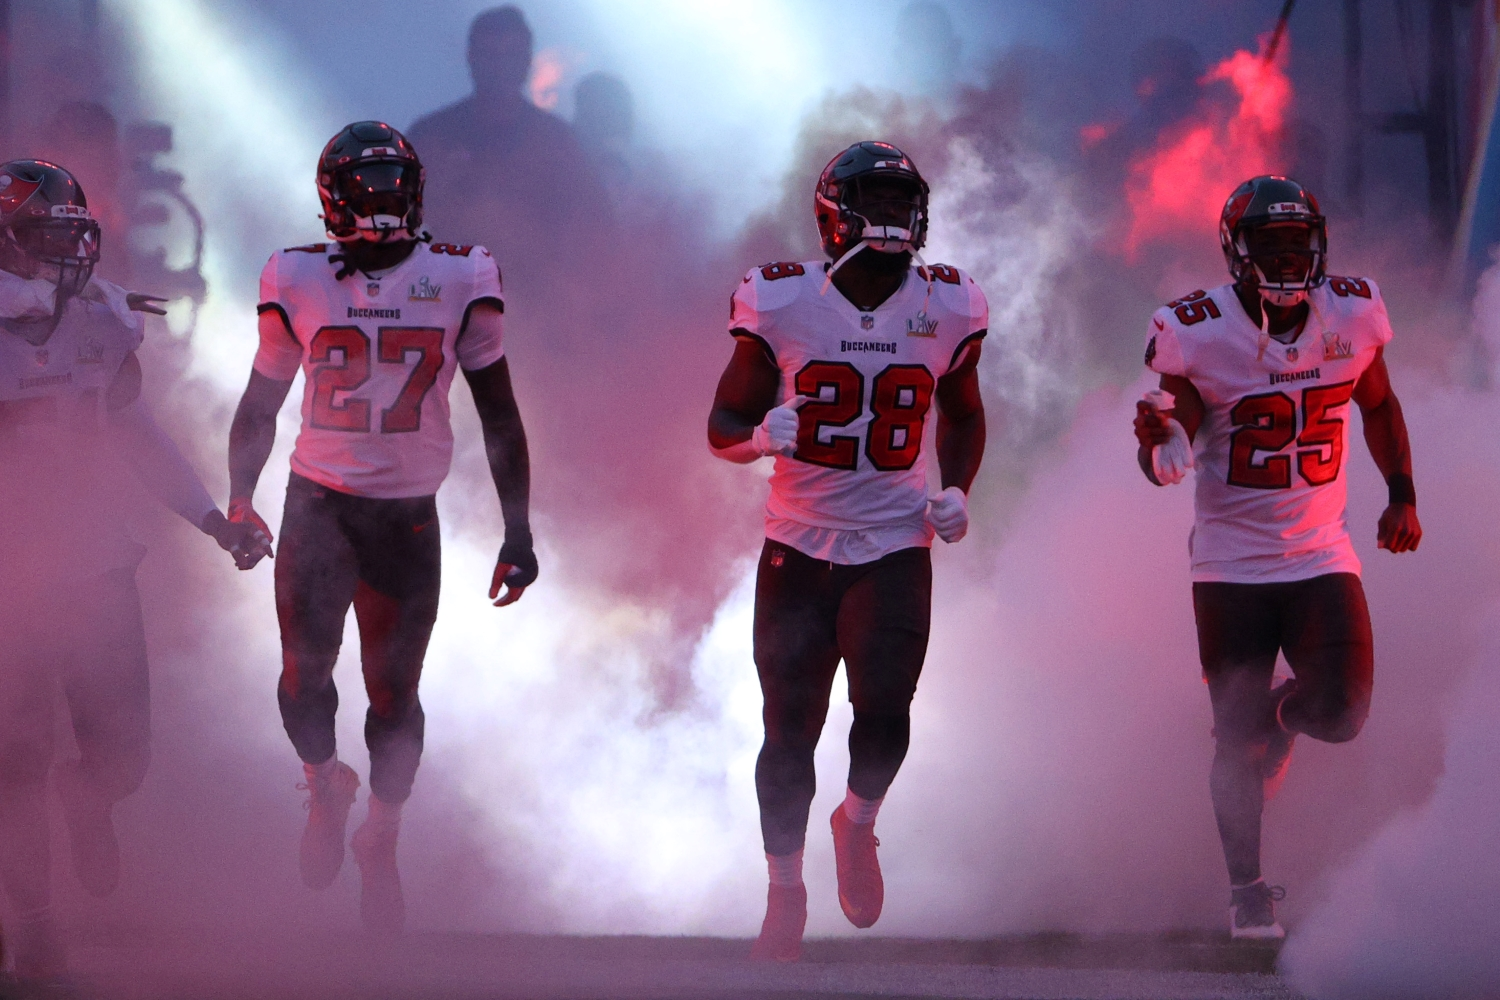 Ronald Jones, Leonard Fournette, and LeSean McCoy of the Tampa Bay Buccaneers take the field before Super Bowl 55.